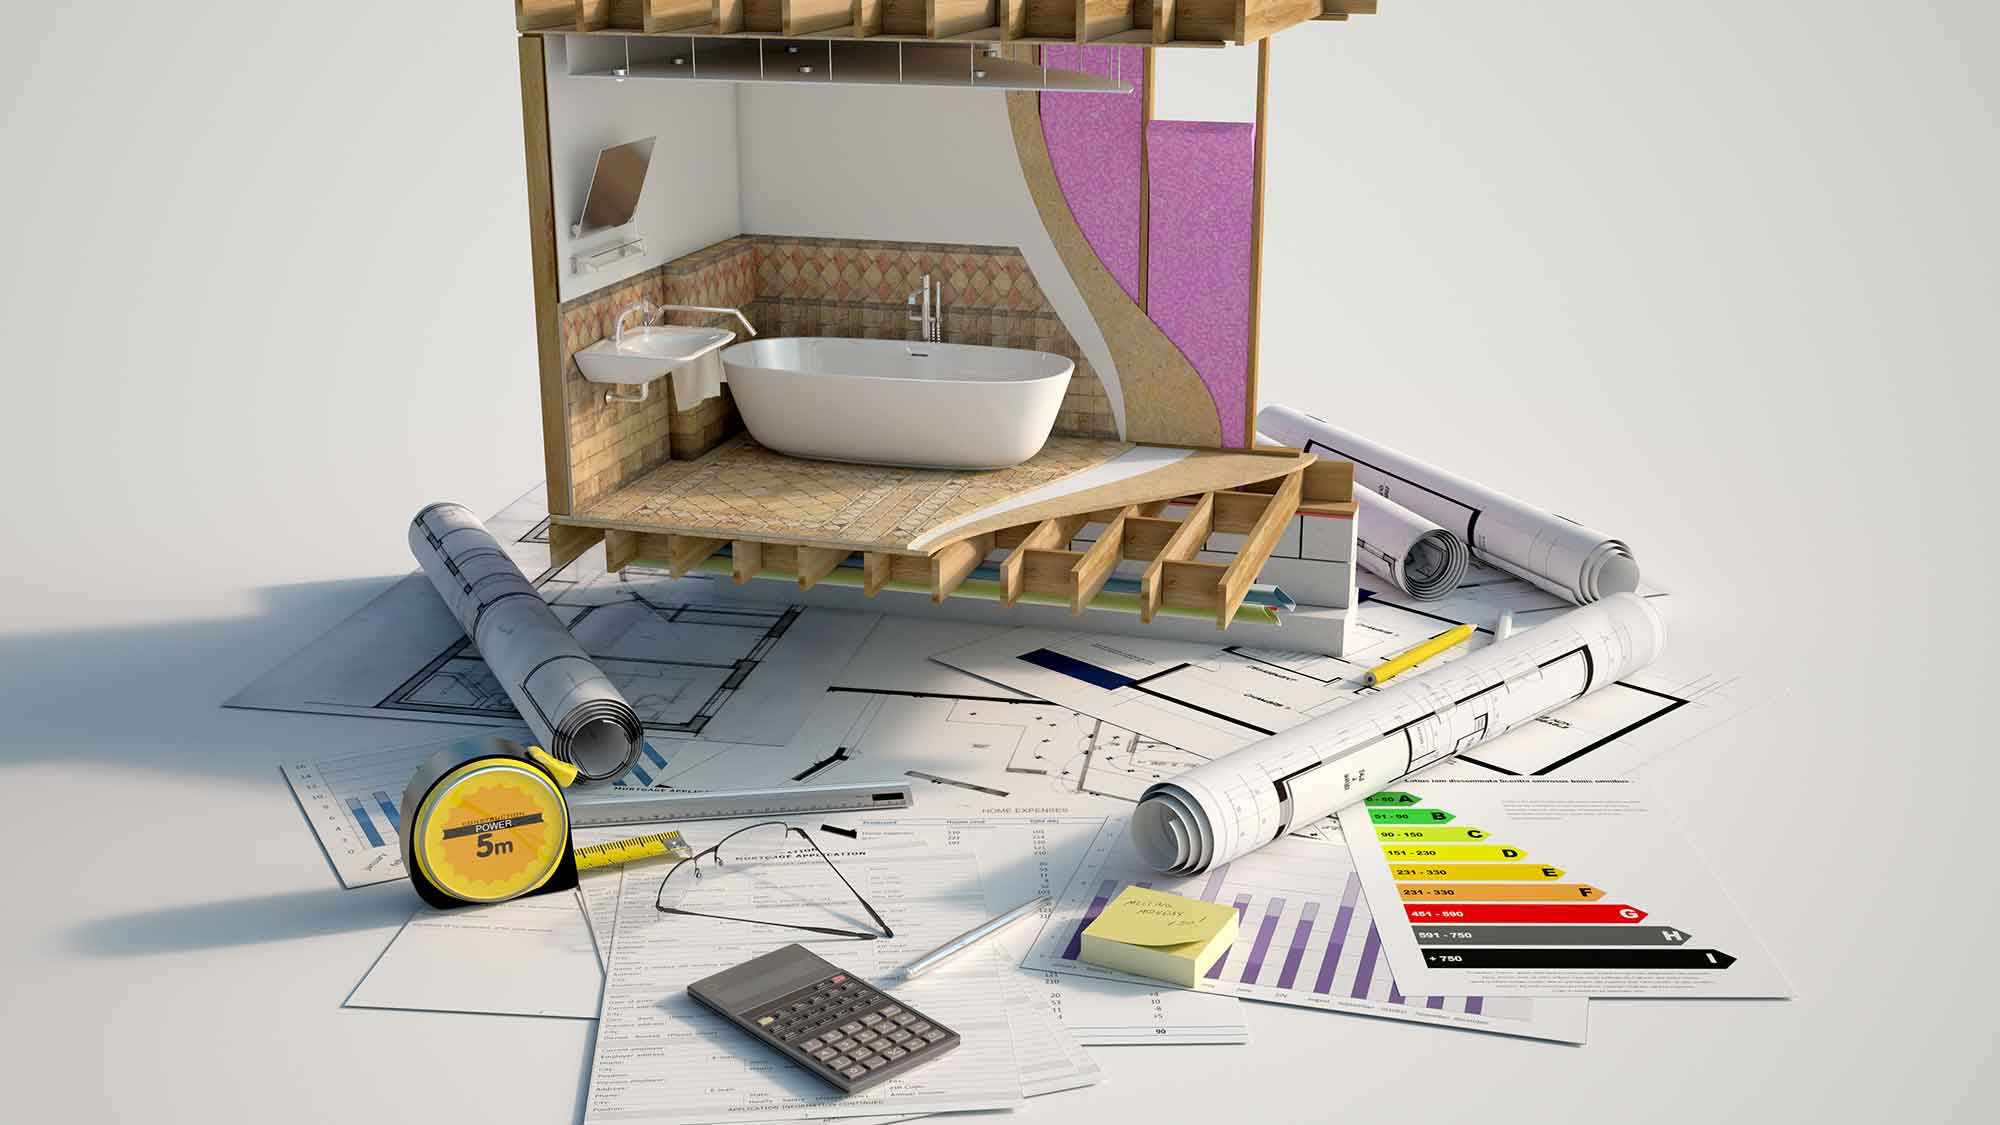 heating manufacturers suppliers essex maintenance leigh on sea plan